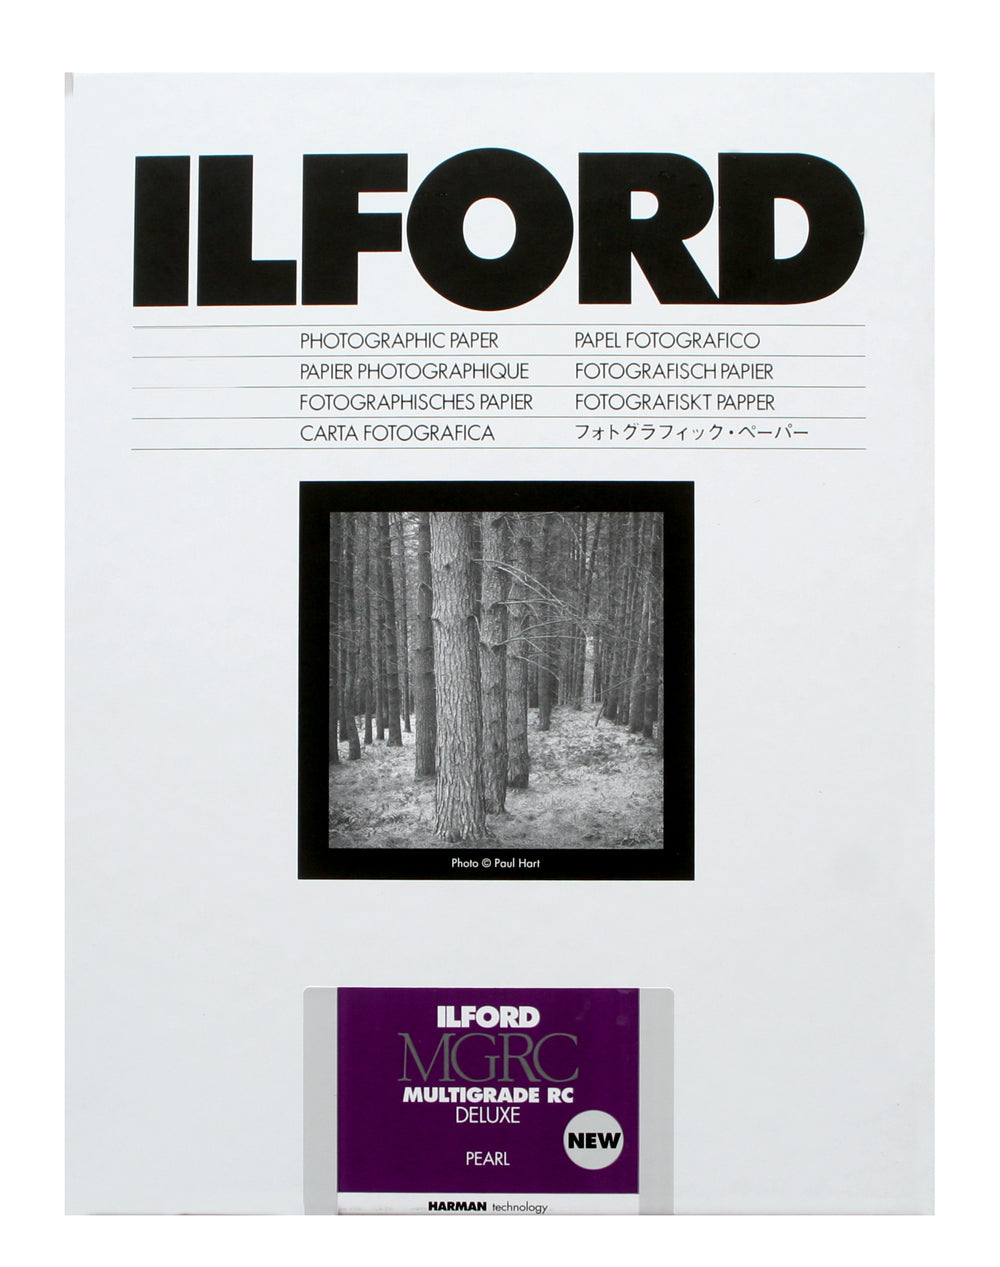 Ilford MGRC 5th Generation Deluxe Pearl